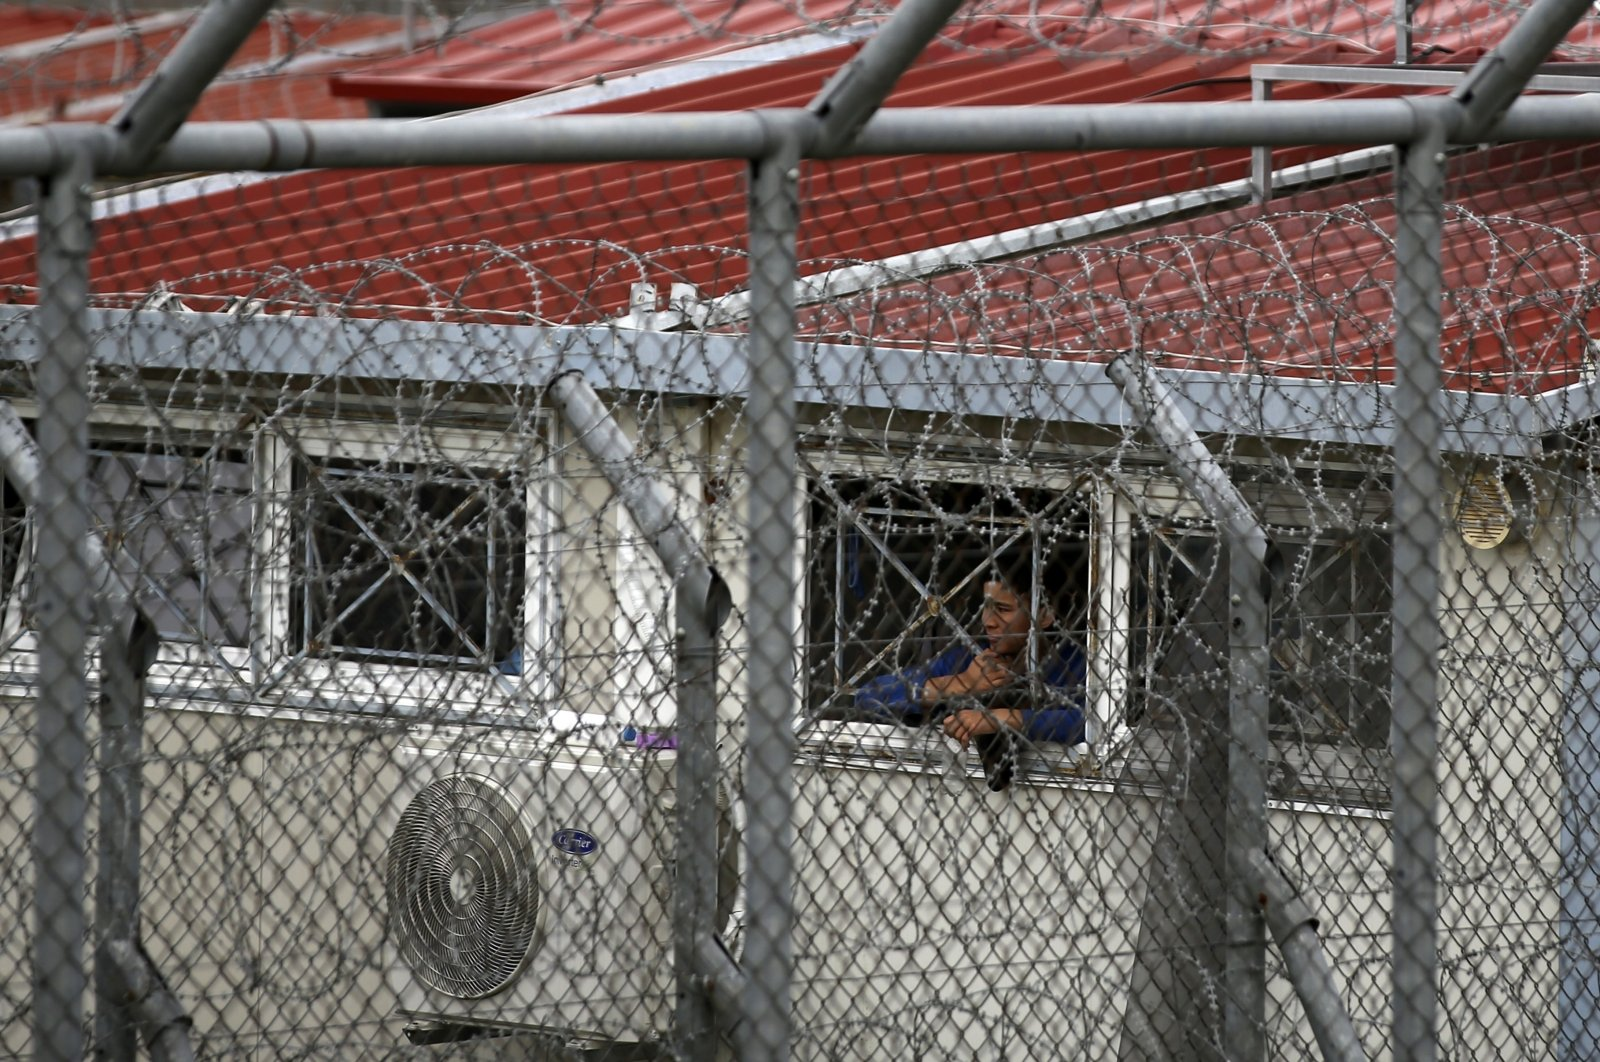 A migrant looks out from a detention center in the village of Fylakio, Evros region, near the Greek-Turkish border, March 8, 2020. (AP Photo)